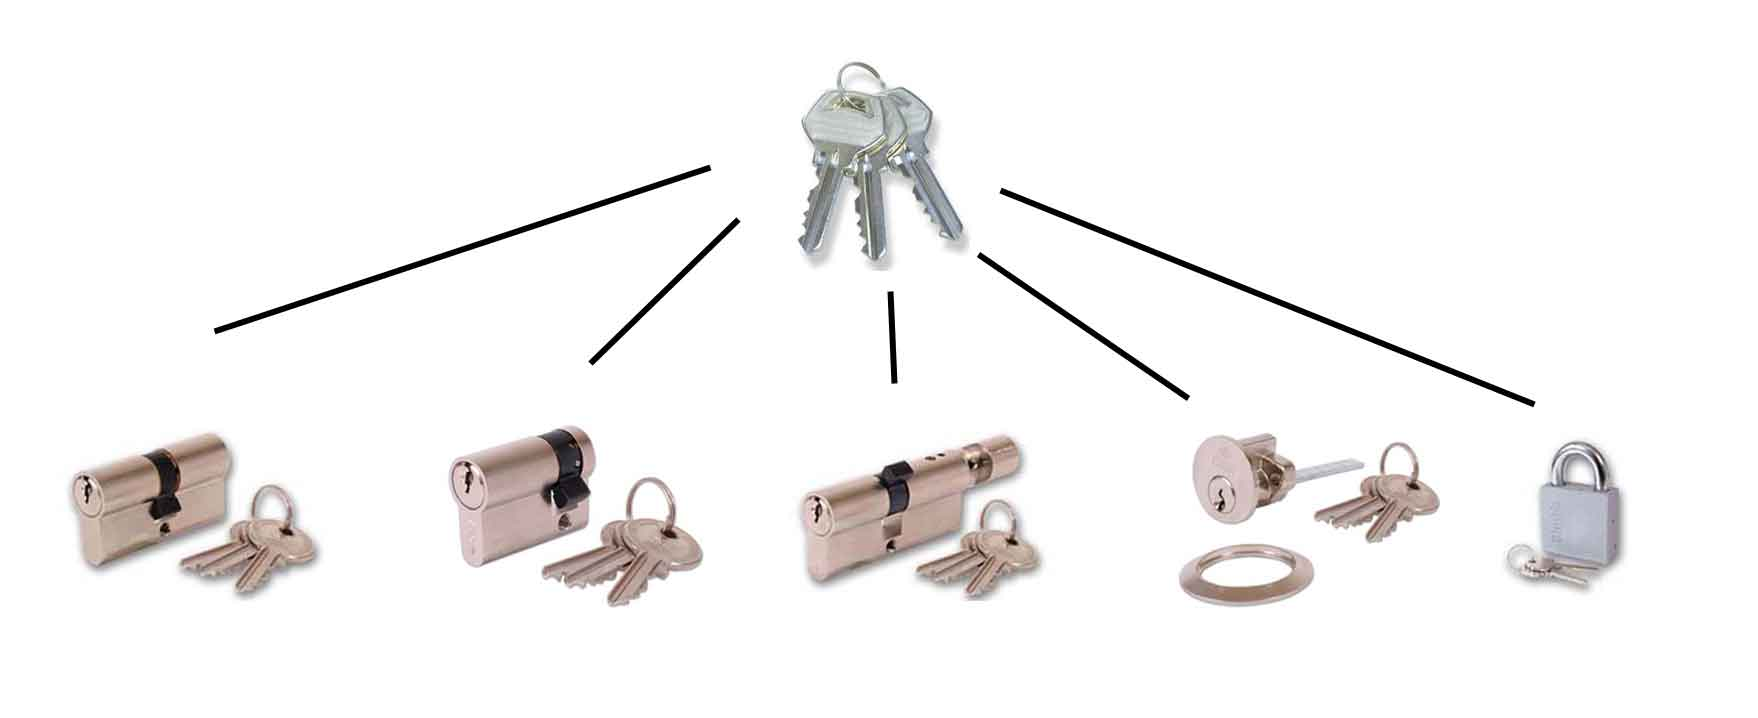 Key Alike Lock suite